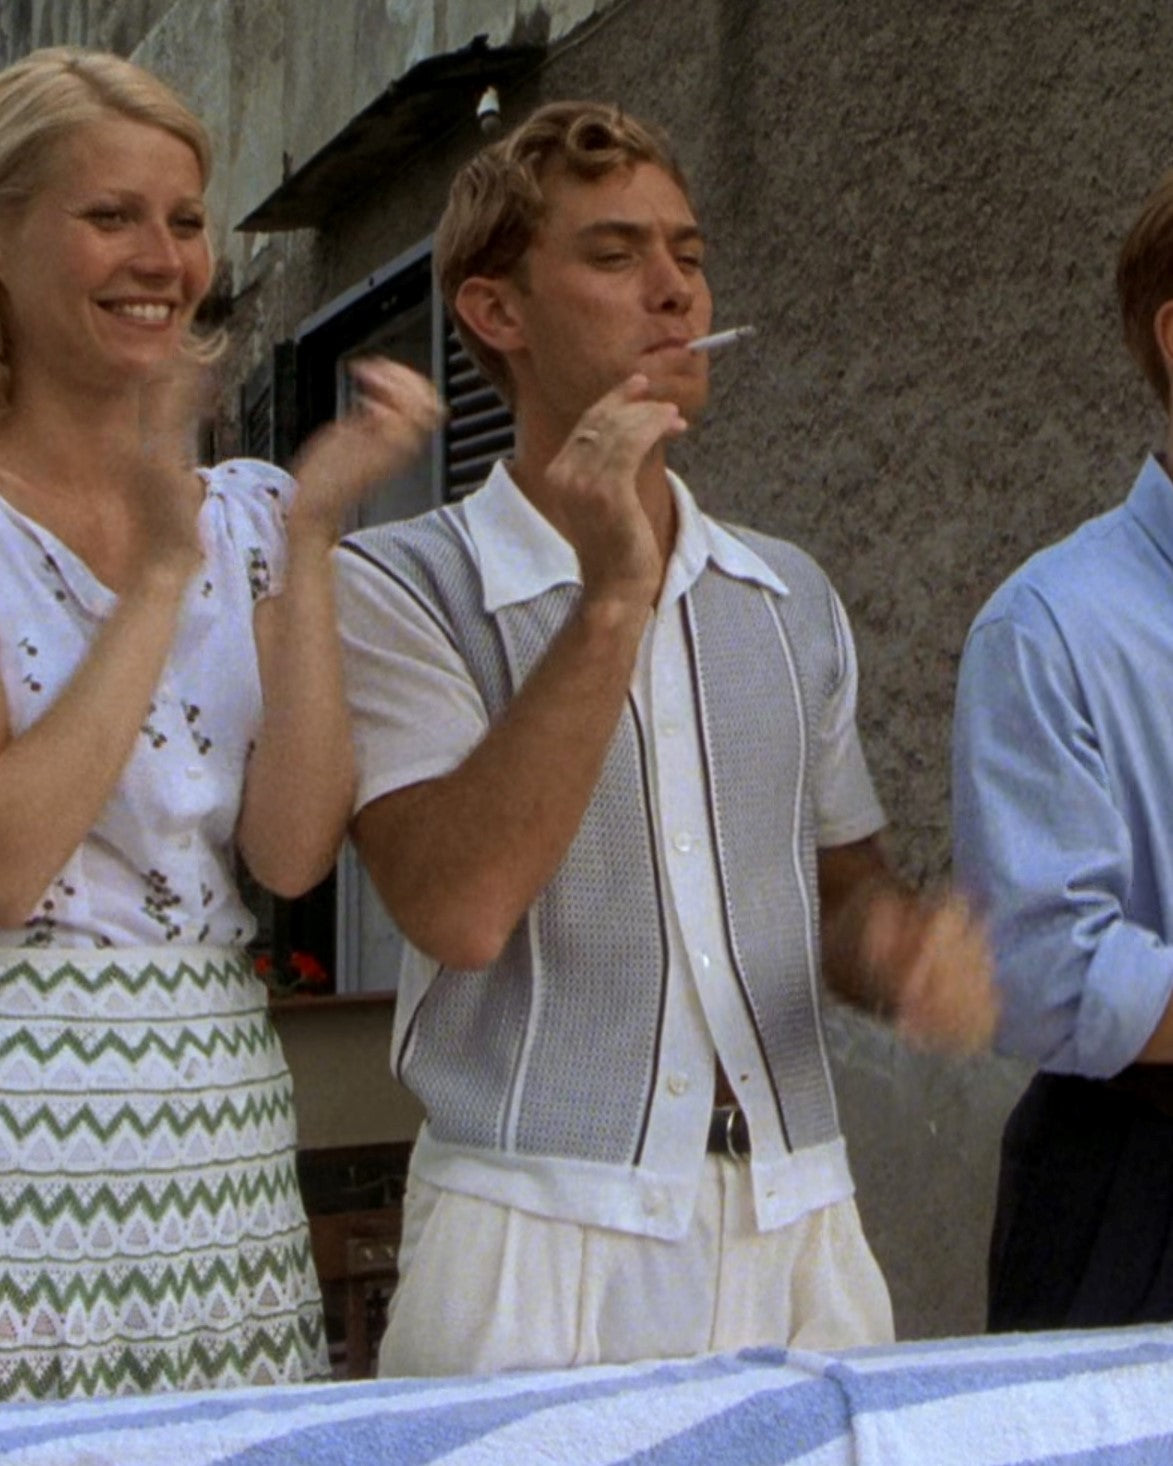 Jude Law wearing a knitted polo as Dickie Greenleaf in The Talented Mr Ripley